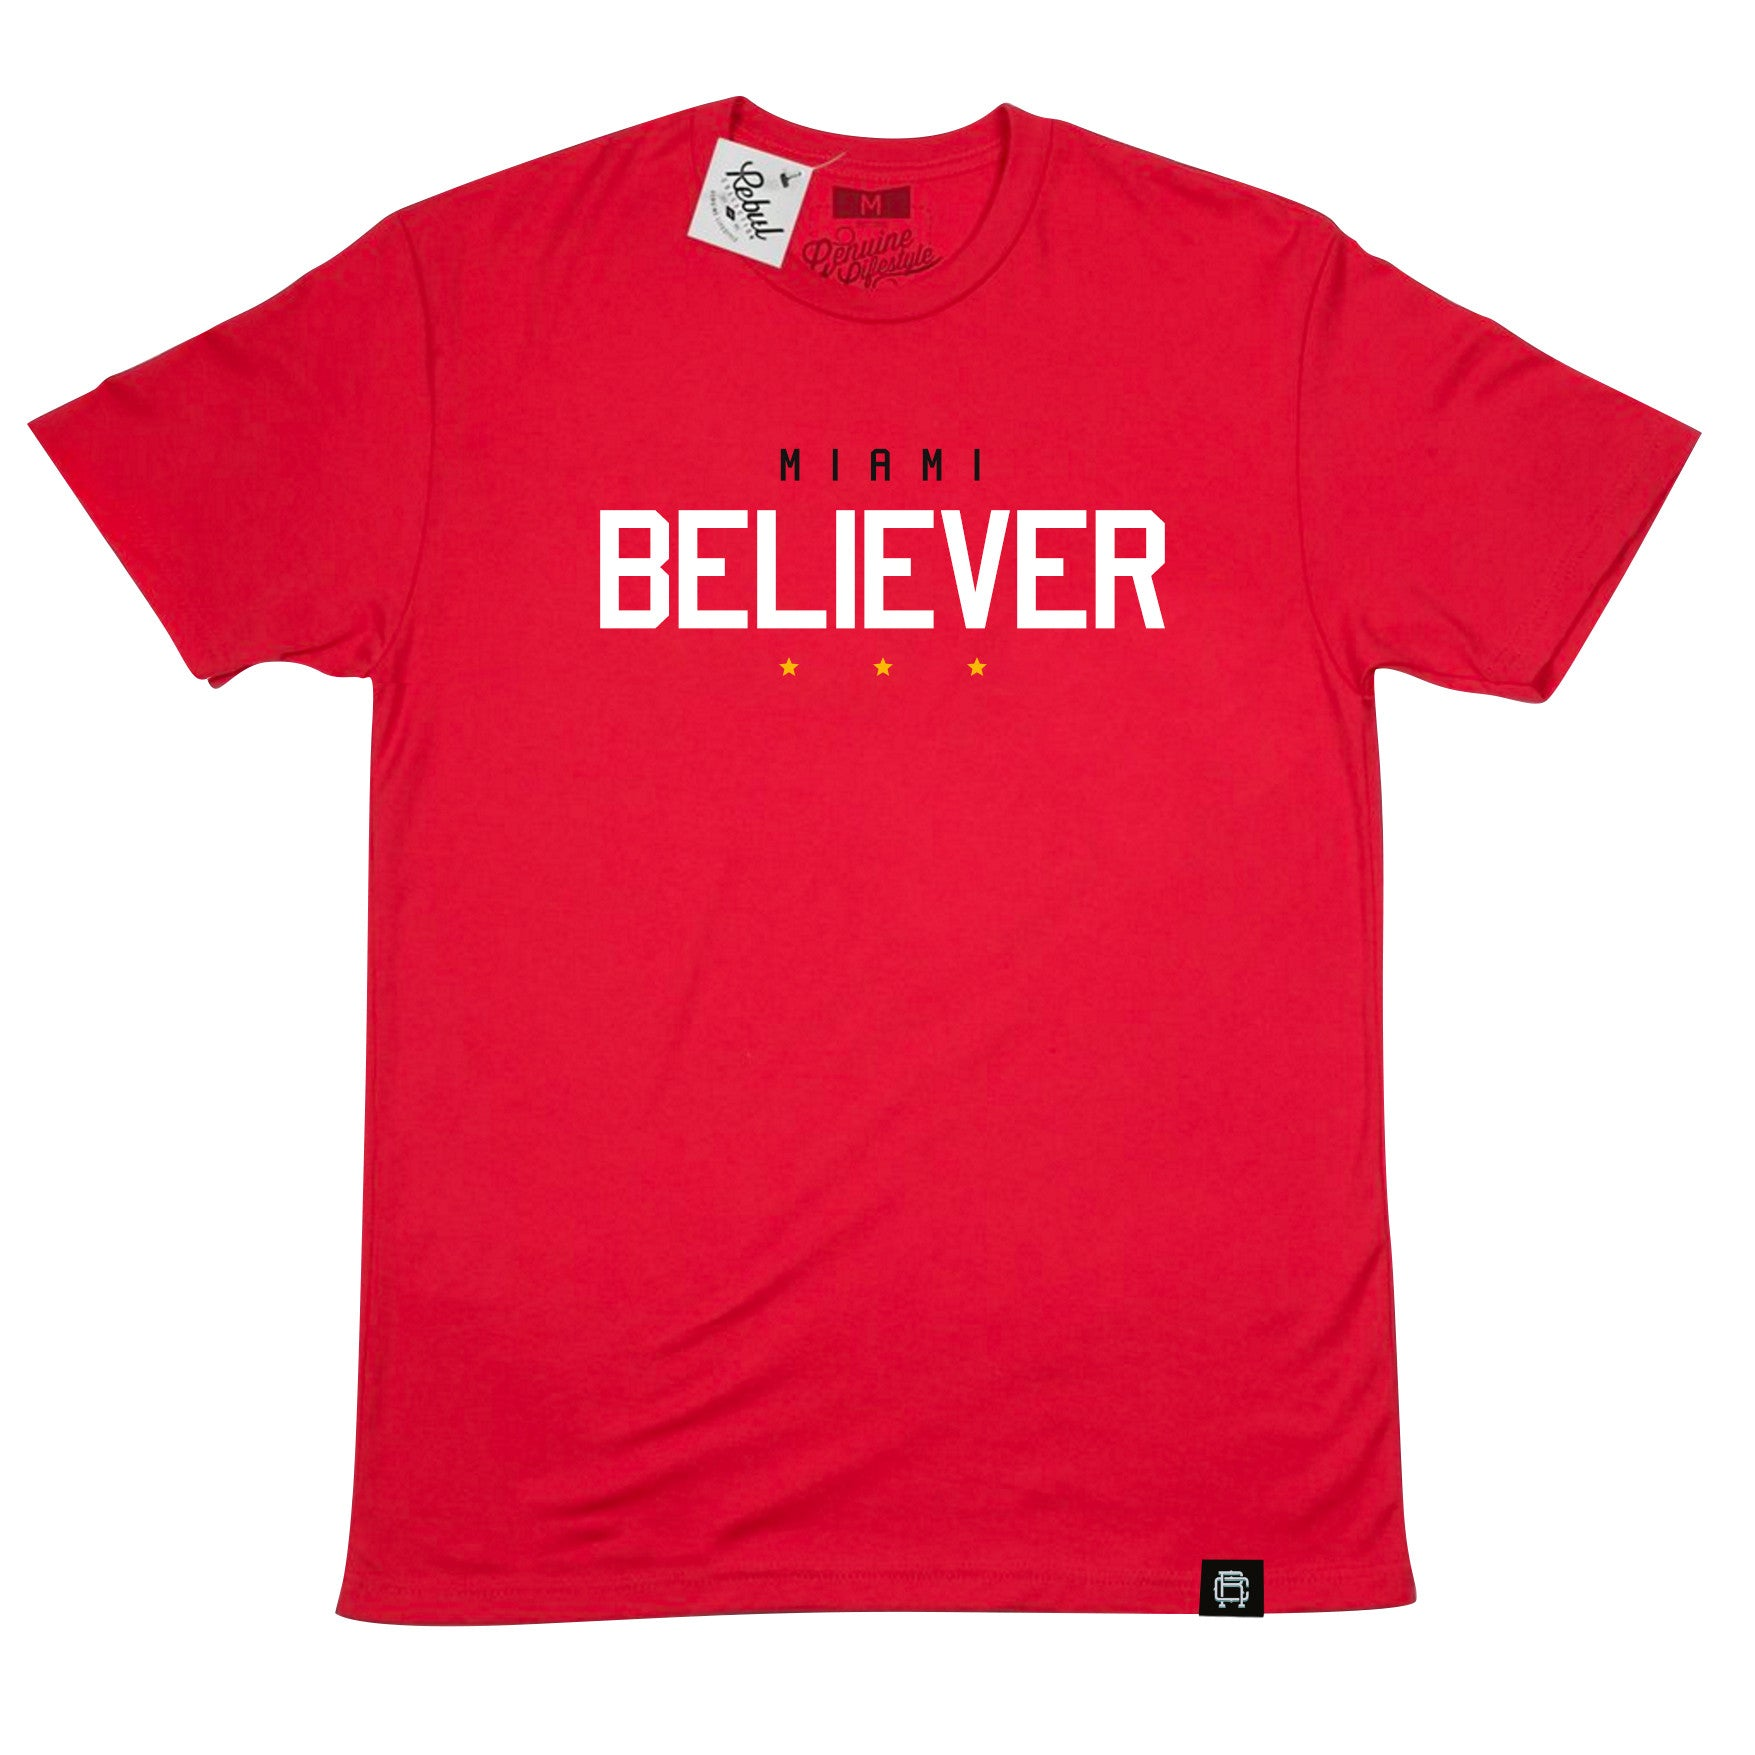 Rebul Collection Miami Heat Believer T-Shirt Red